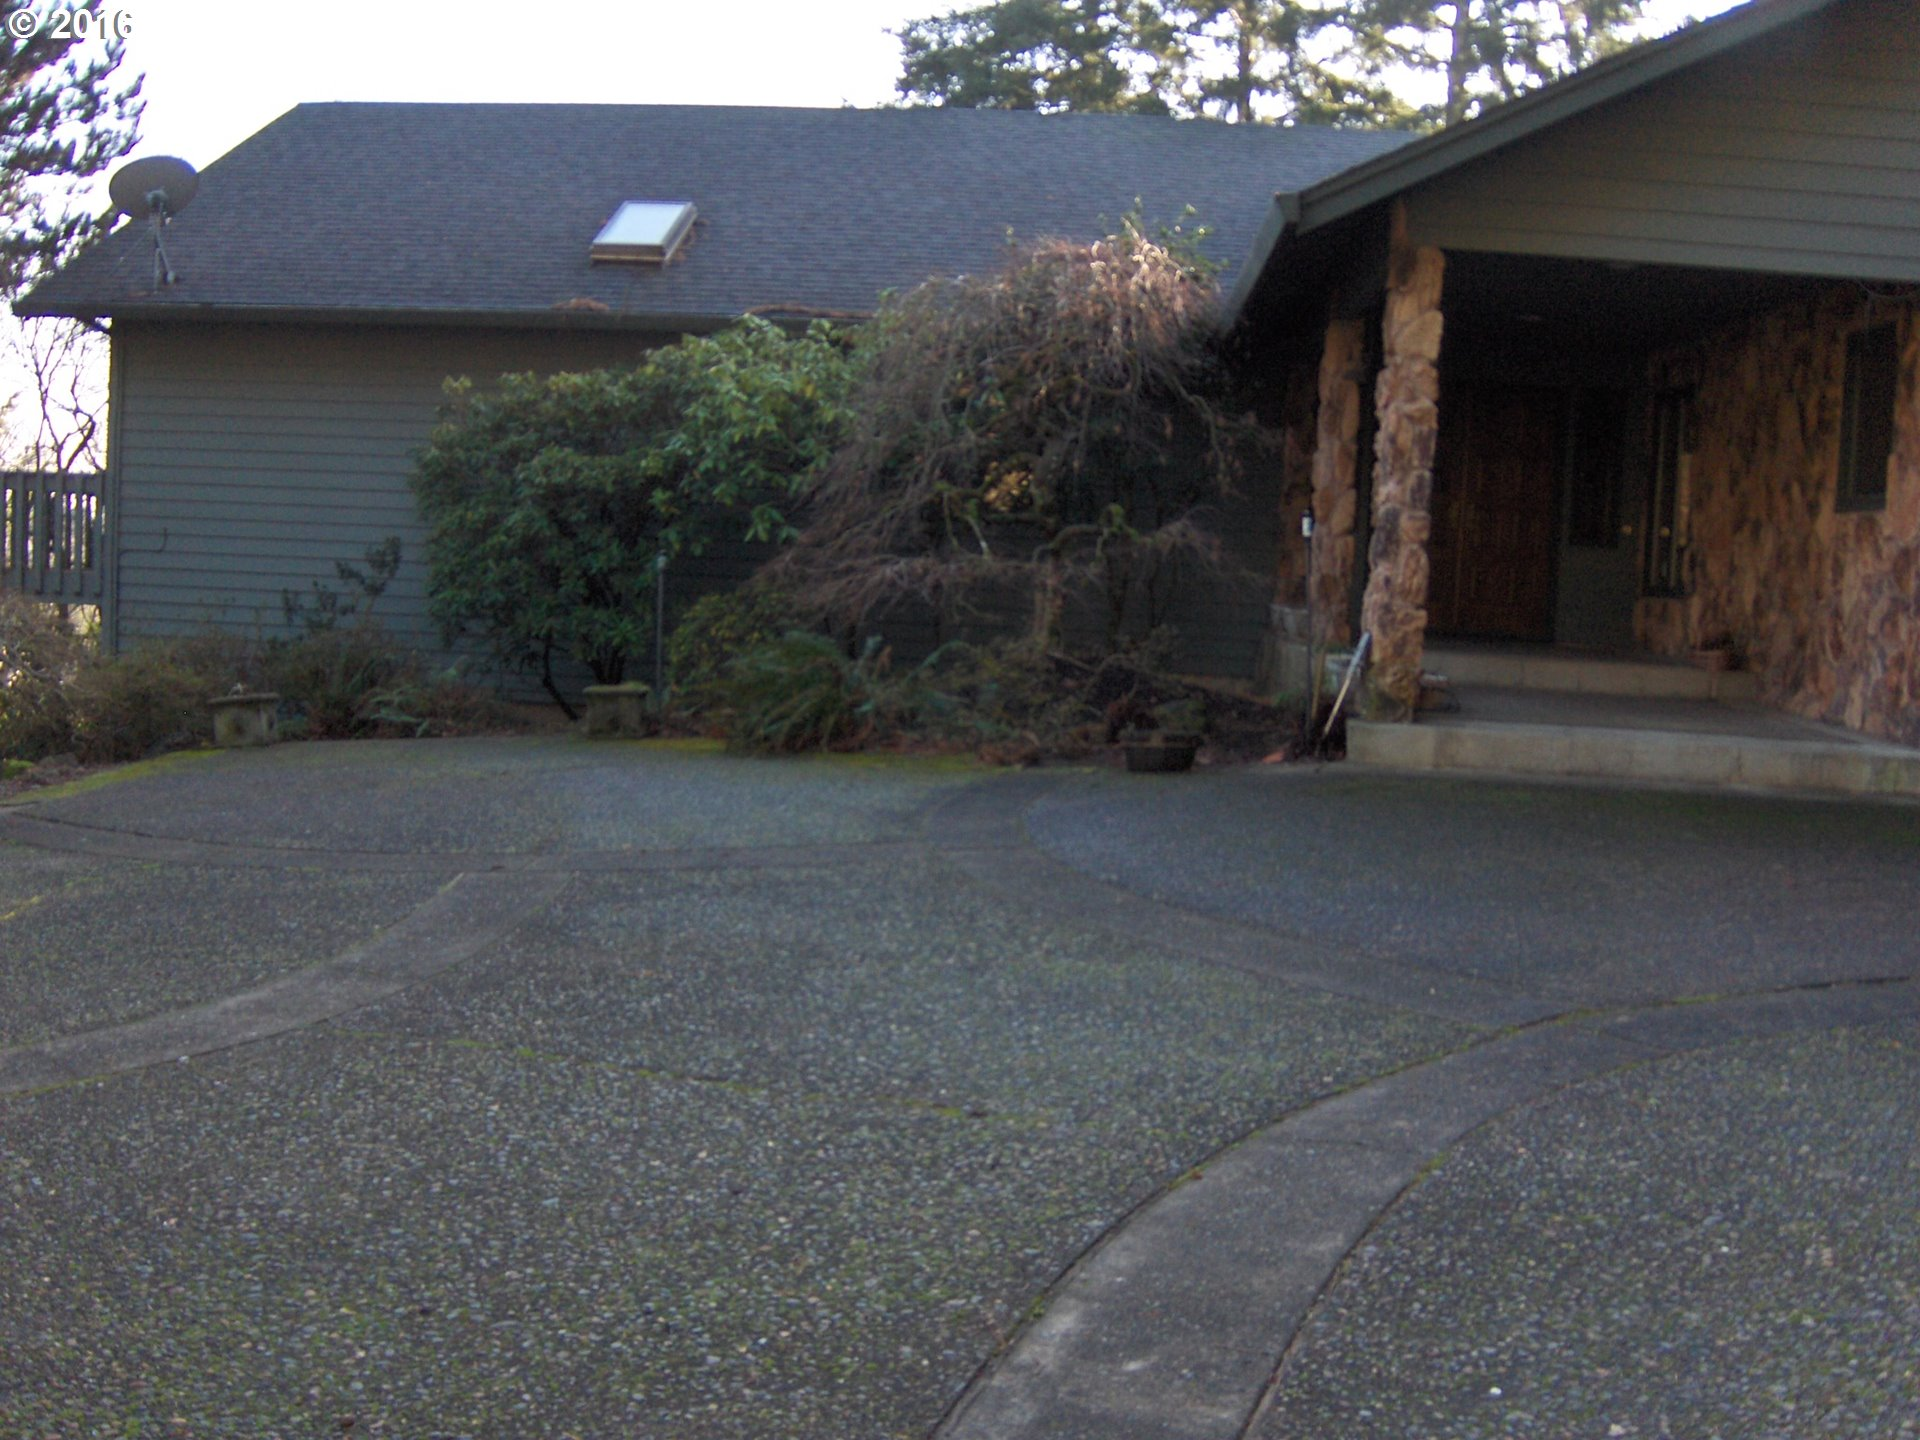 12555 SW Beef Bend Rd, Tigard, Oregon 97224